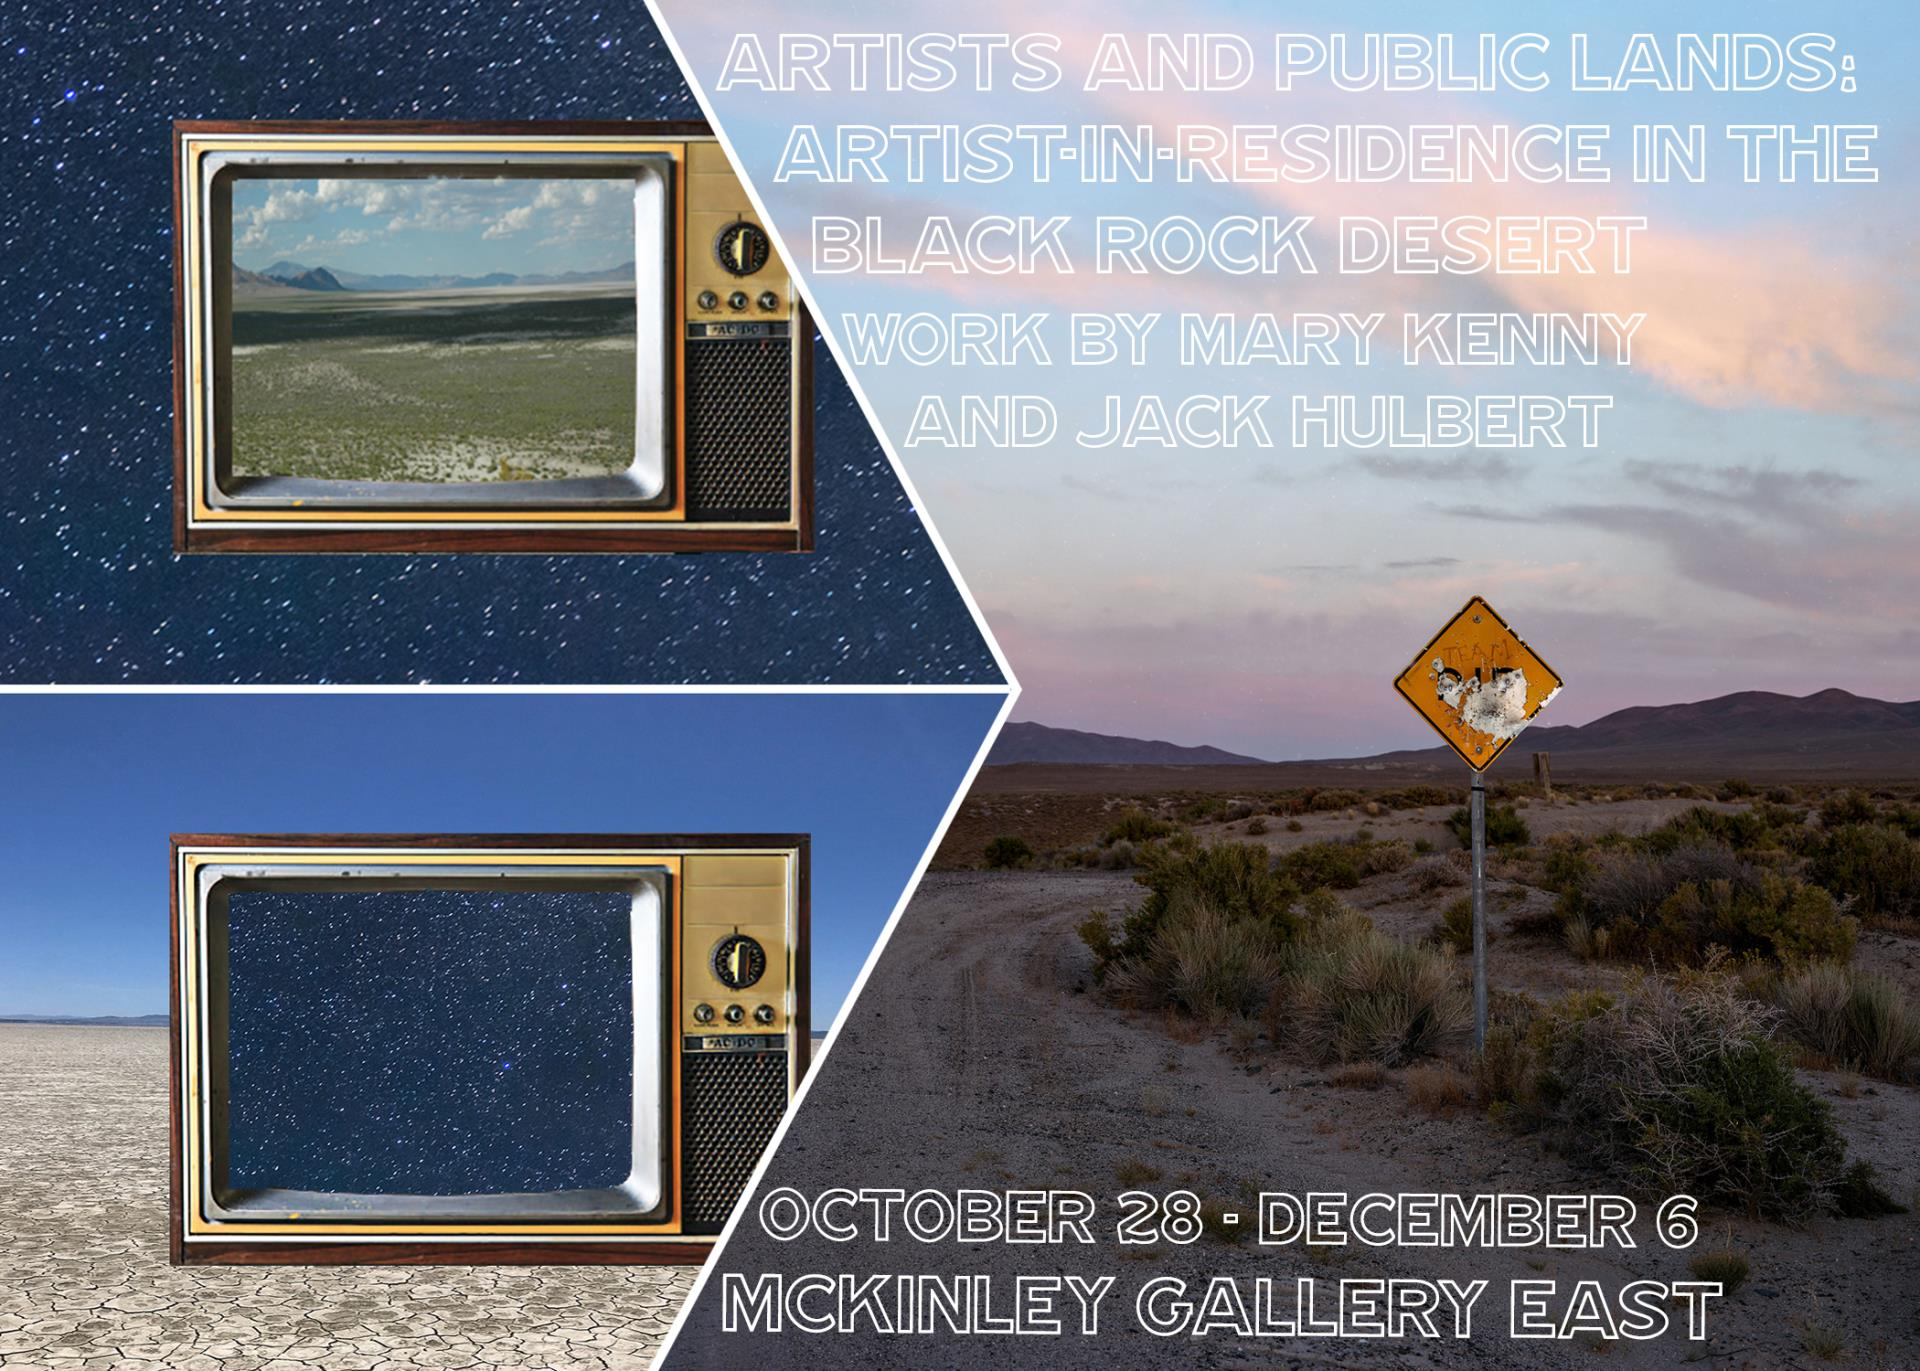 An image of two tvs showing a desert landscape and the stars.  An image of an illegible road sign.